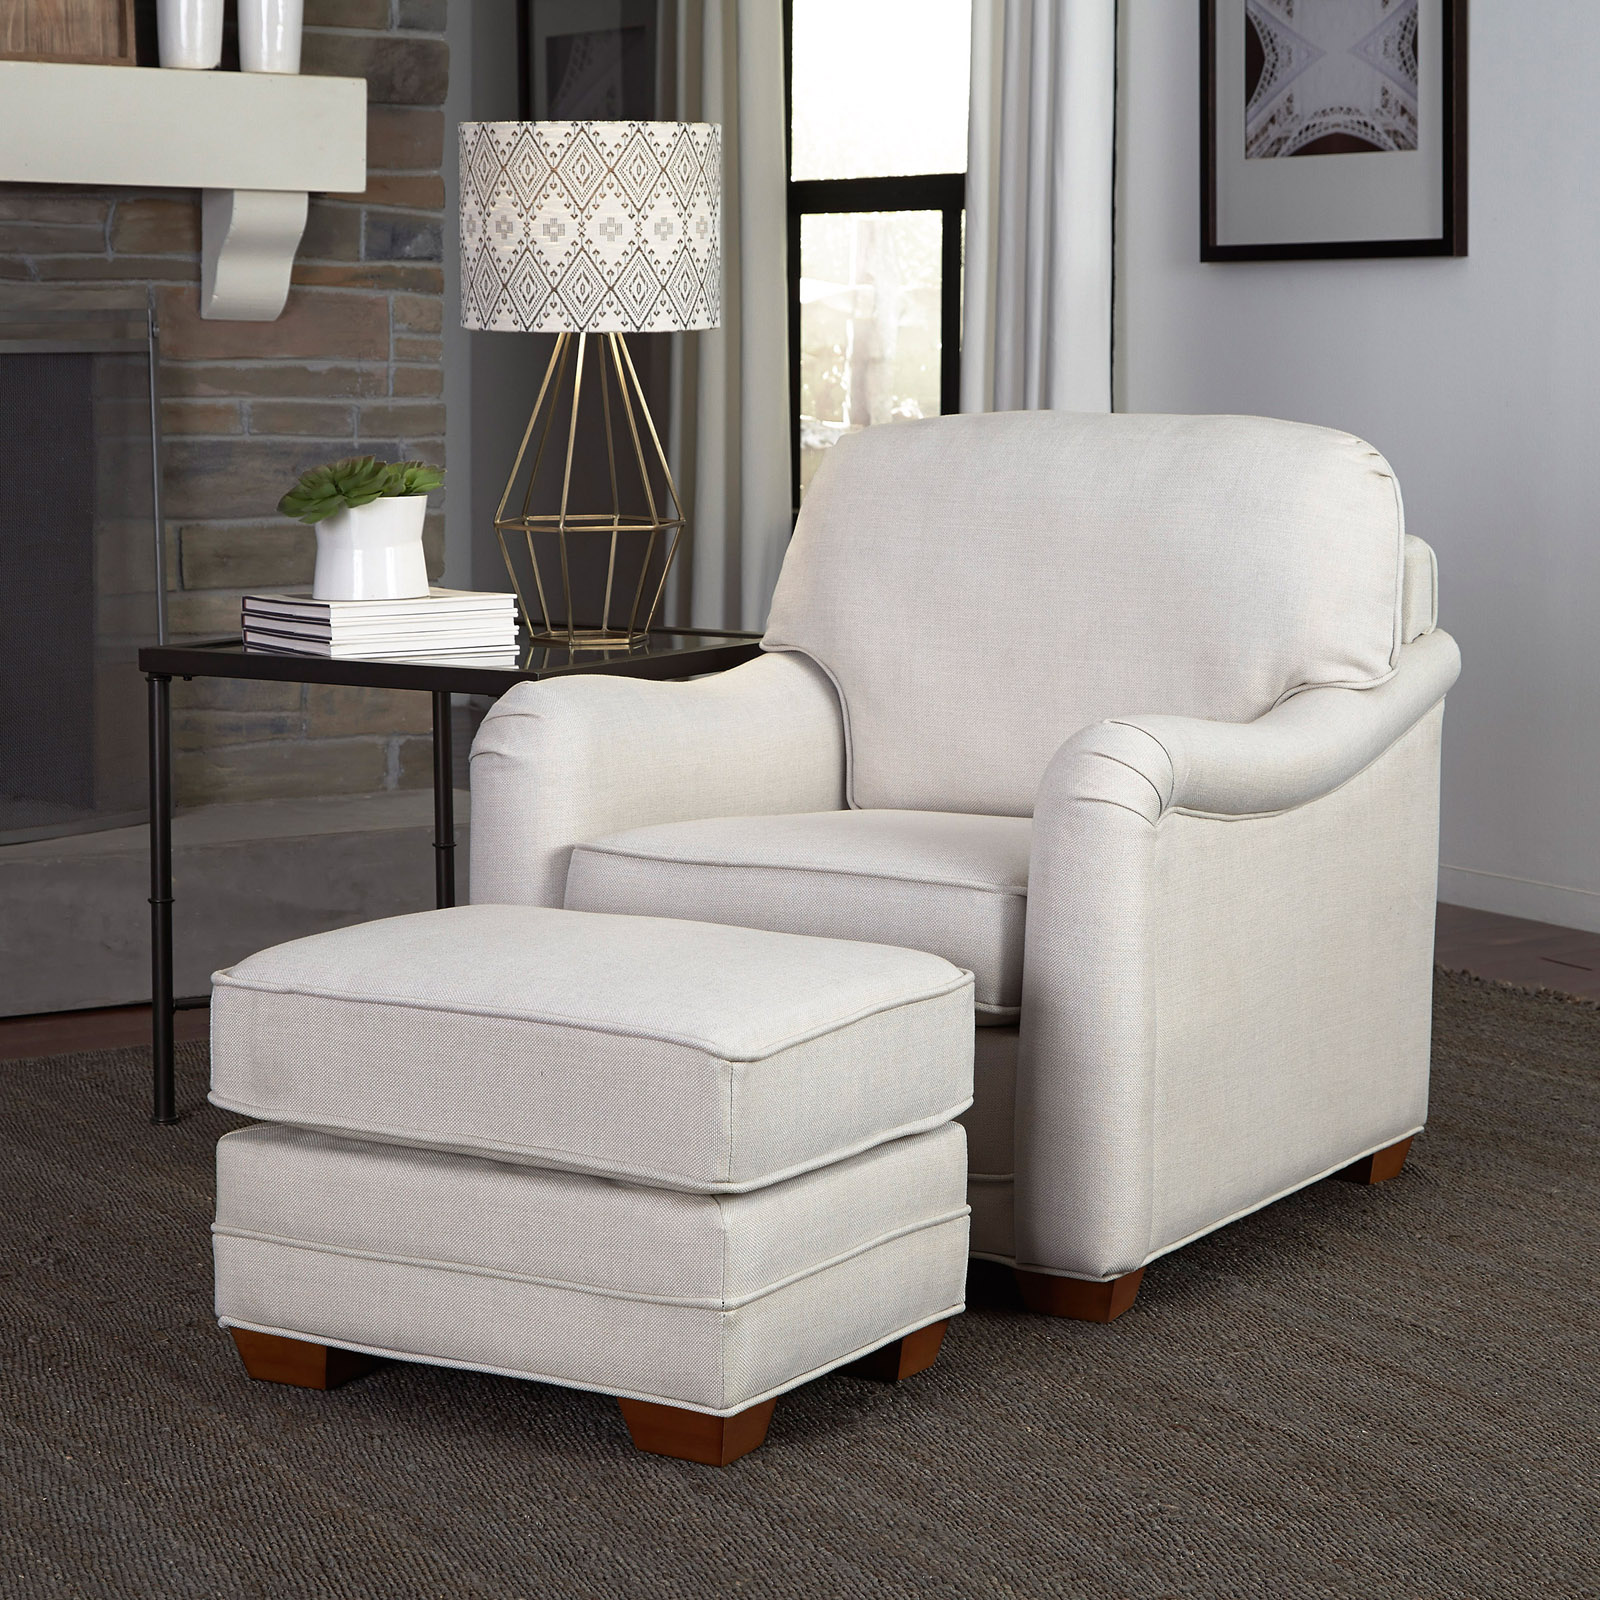 Hannigan Accent Chair Ottoman: Home Styles Heather Stationary Club Chair With Optional